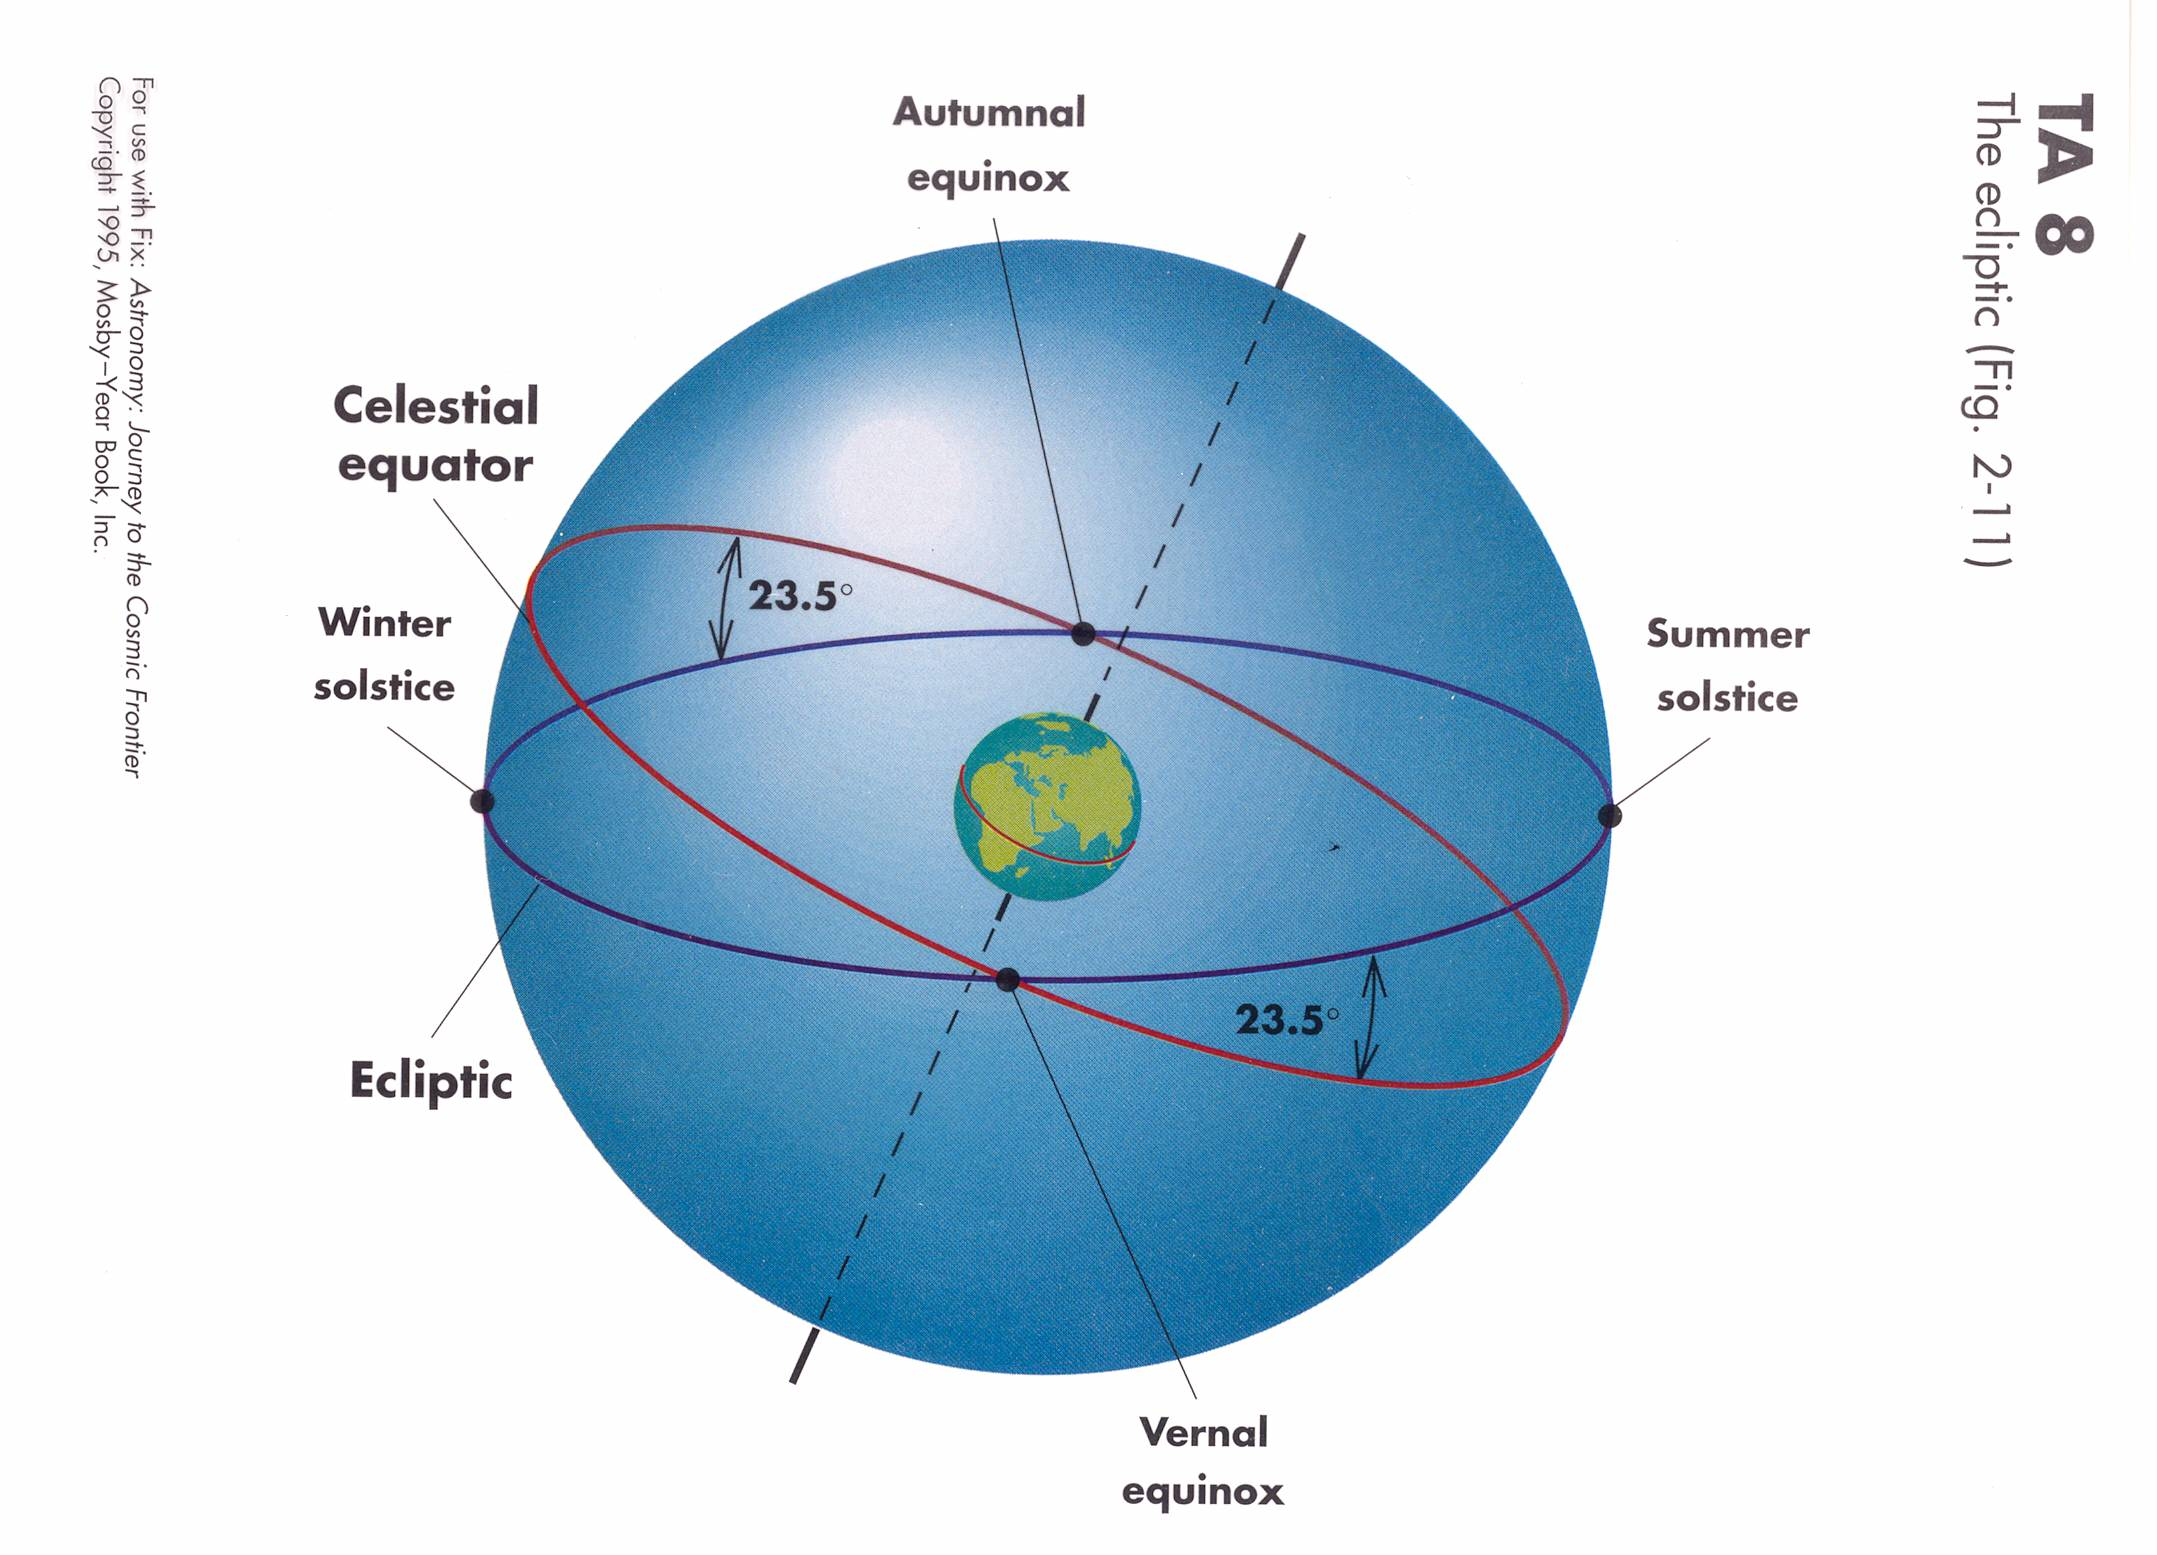 the ecliptic is the great circle on the celestial sphere that the sun  appears to follow as the earth revolves around the sun  the ecliptic is  tilted by 23 5